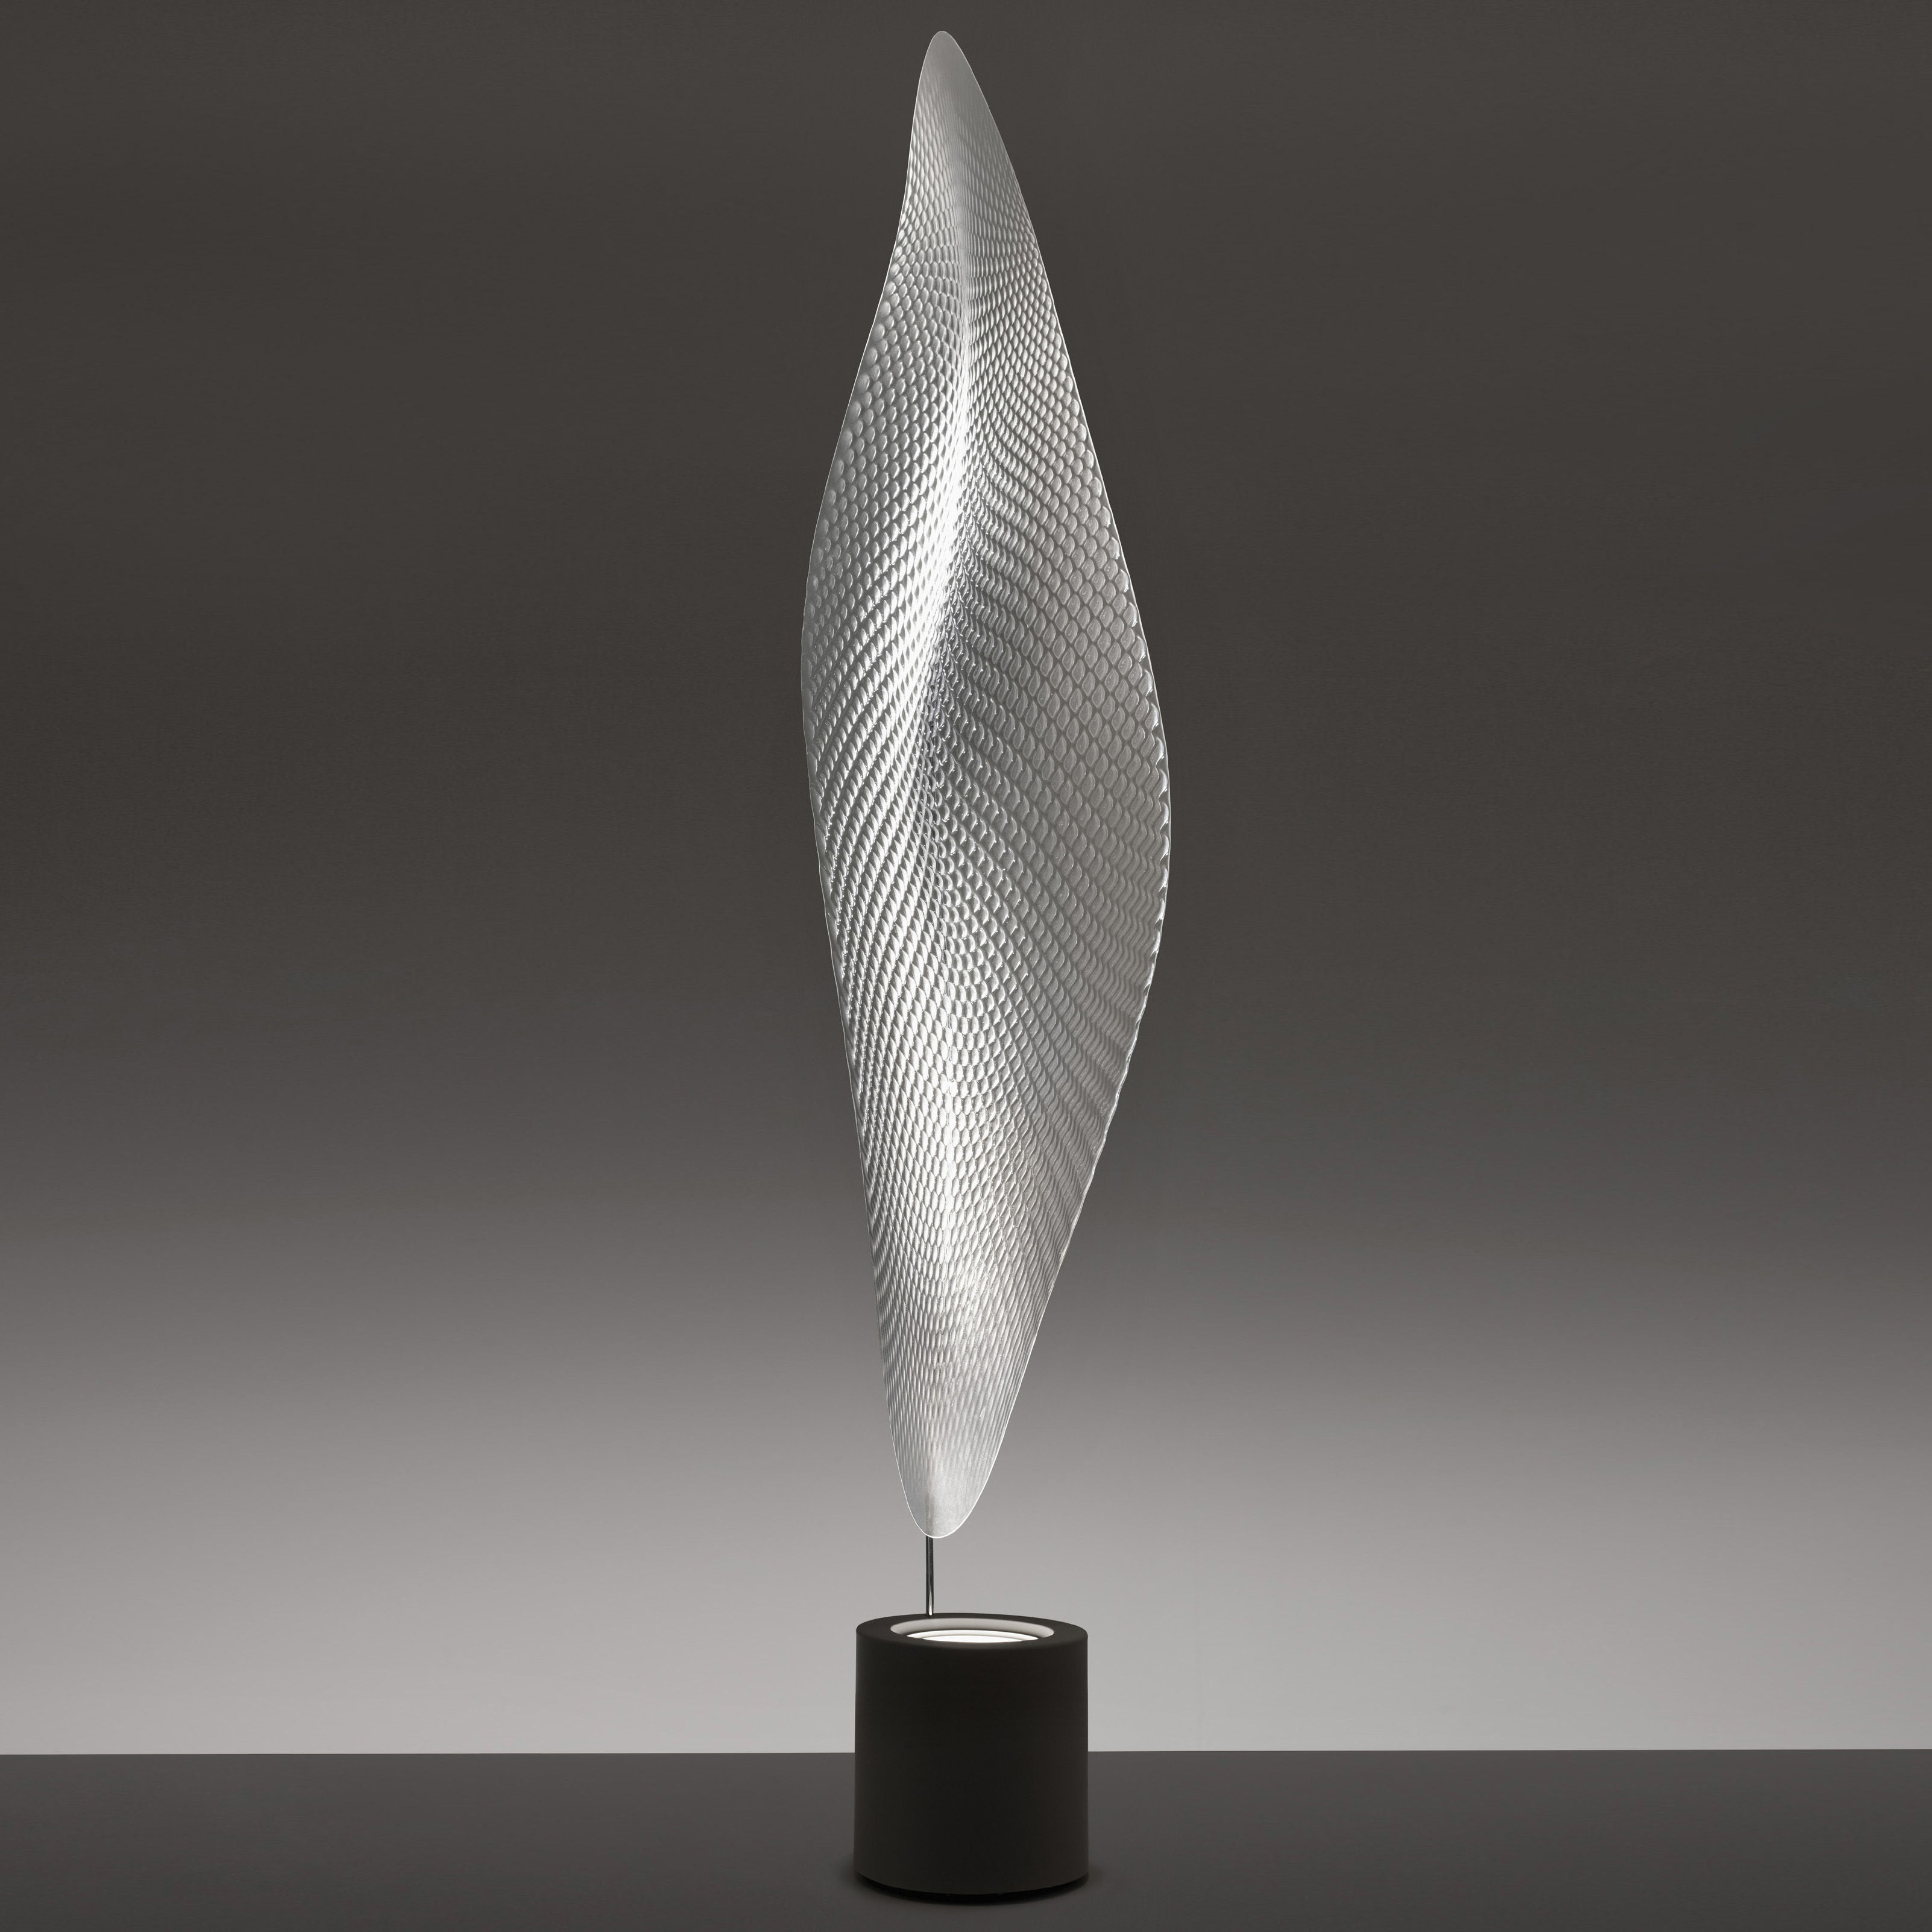 Lighting - Floor lamps - Cosmic leaf Floor lamp by Artemide - Grey base / Transparent diffuser - Metal, Methacrylate